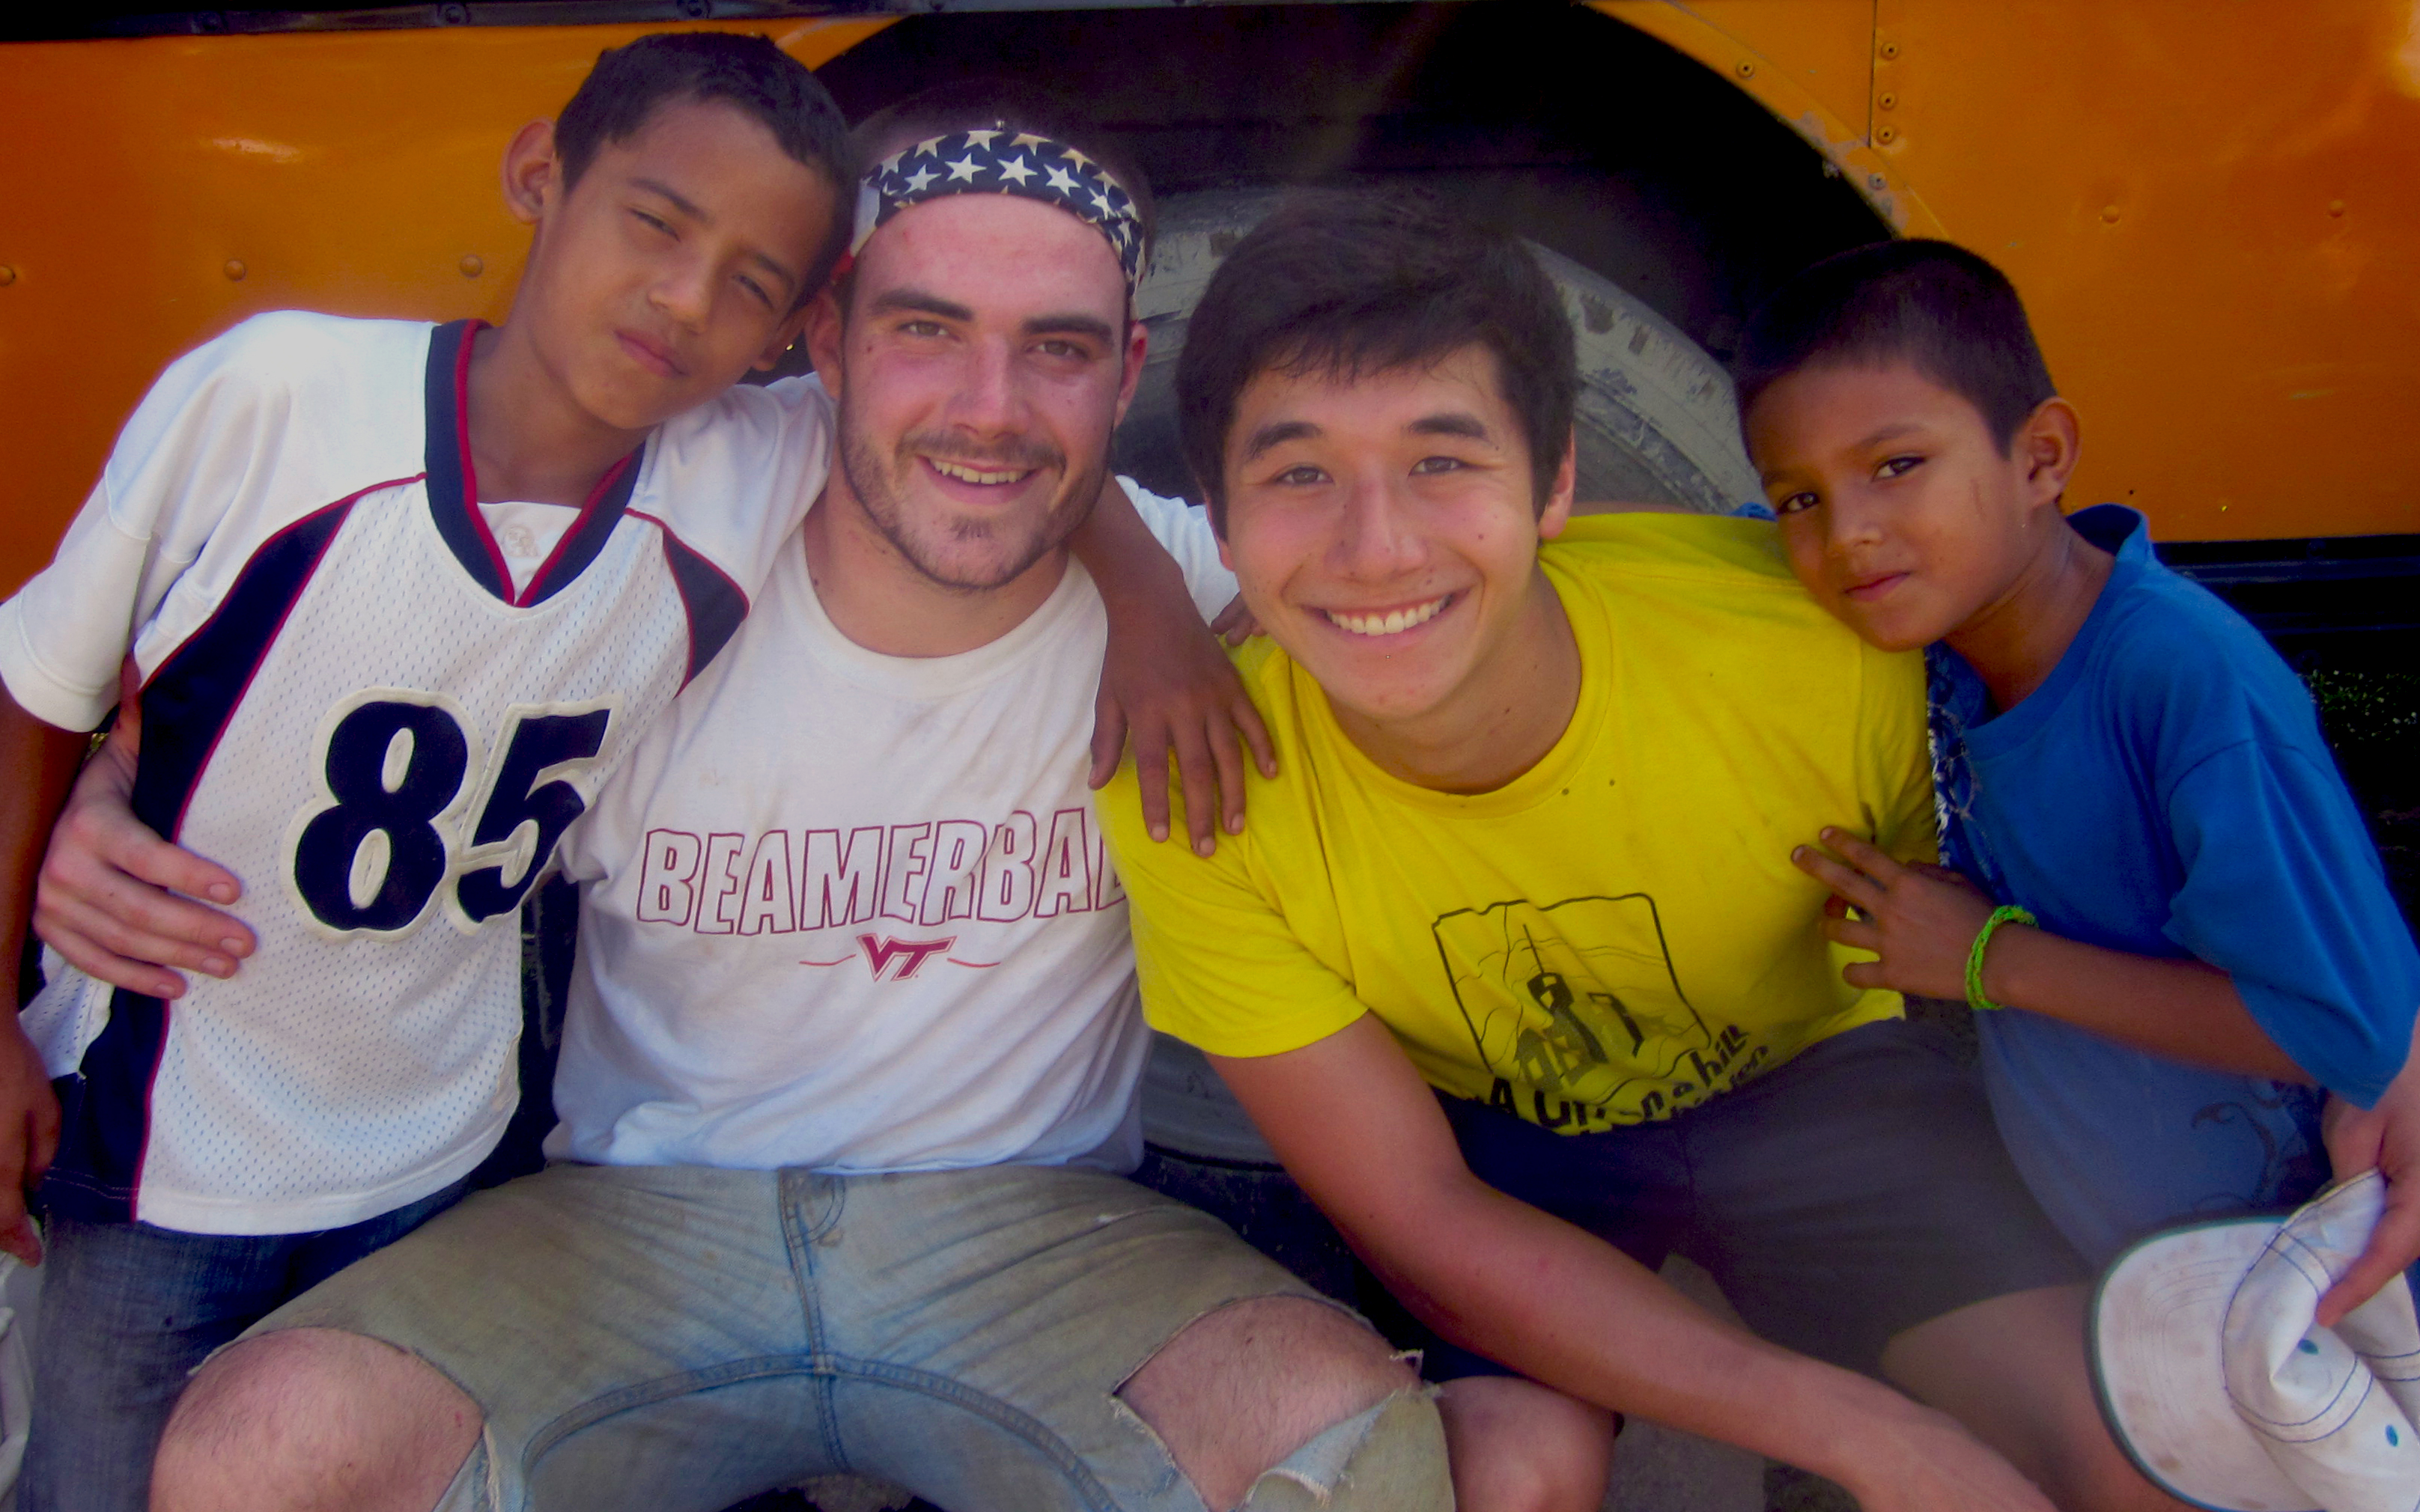 John Duffy (second from left) and Josh Enokida (third from left) pose with two Honduran boys.